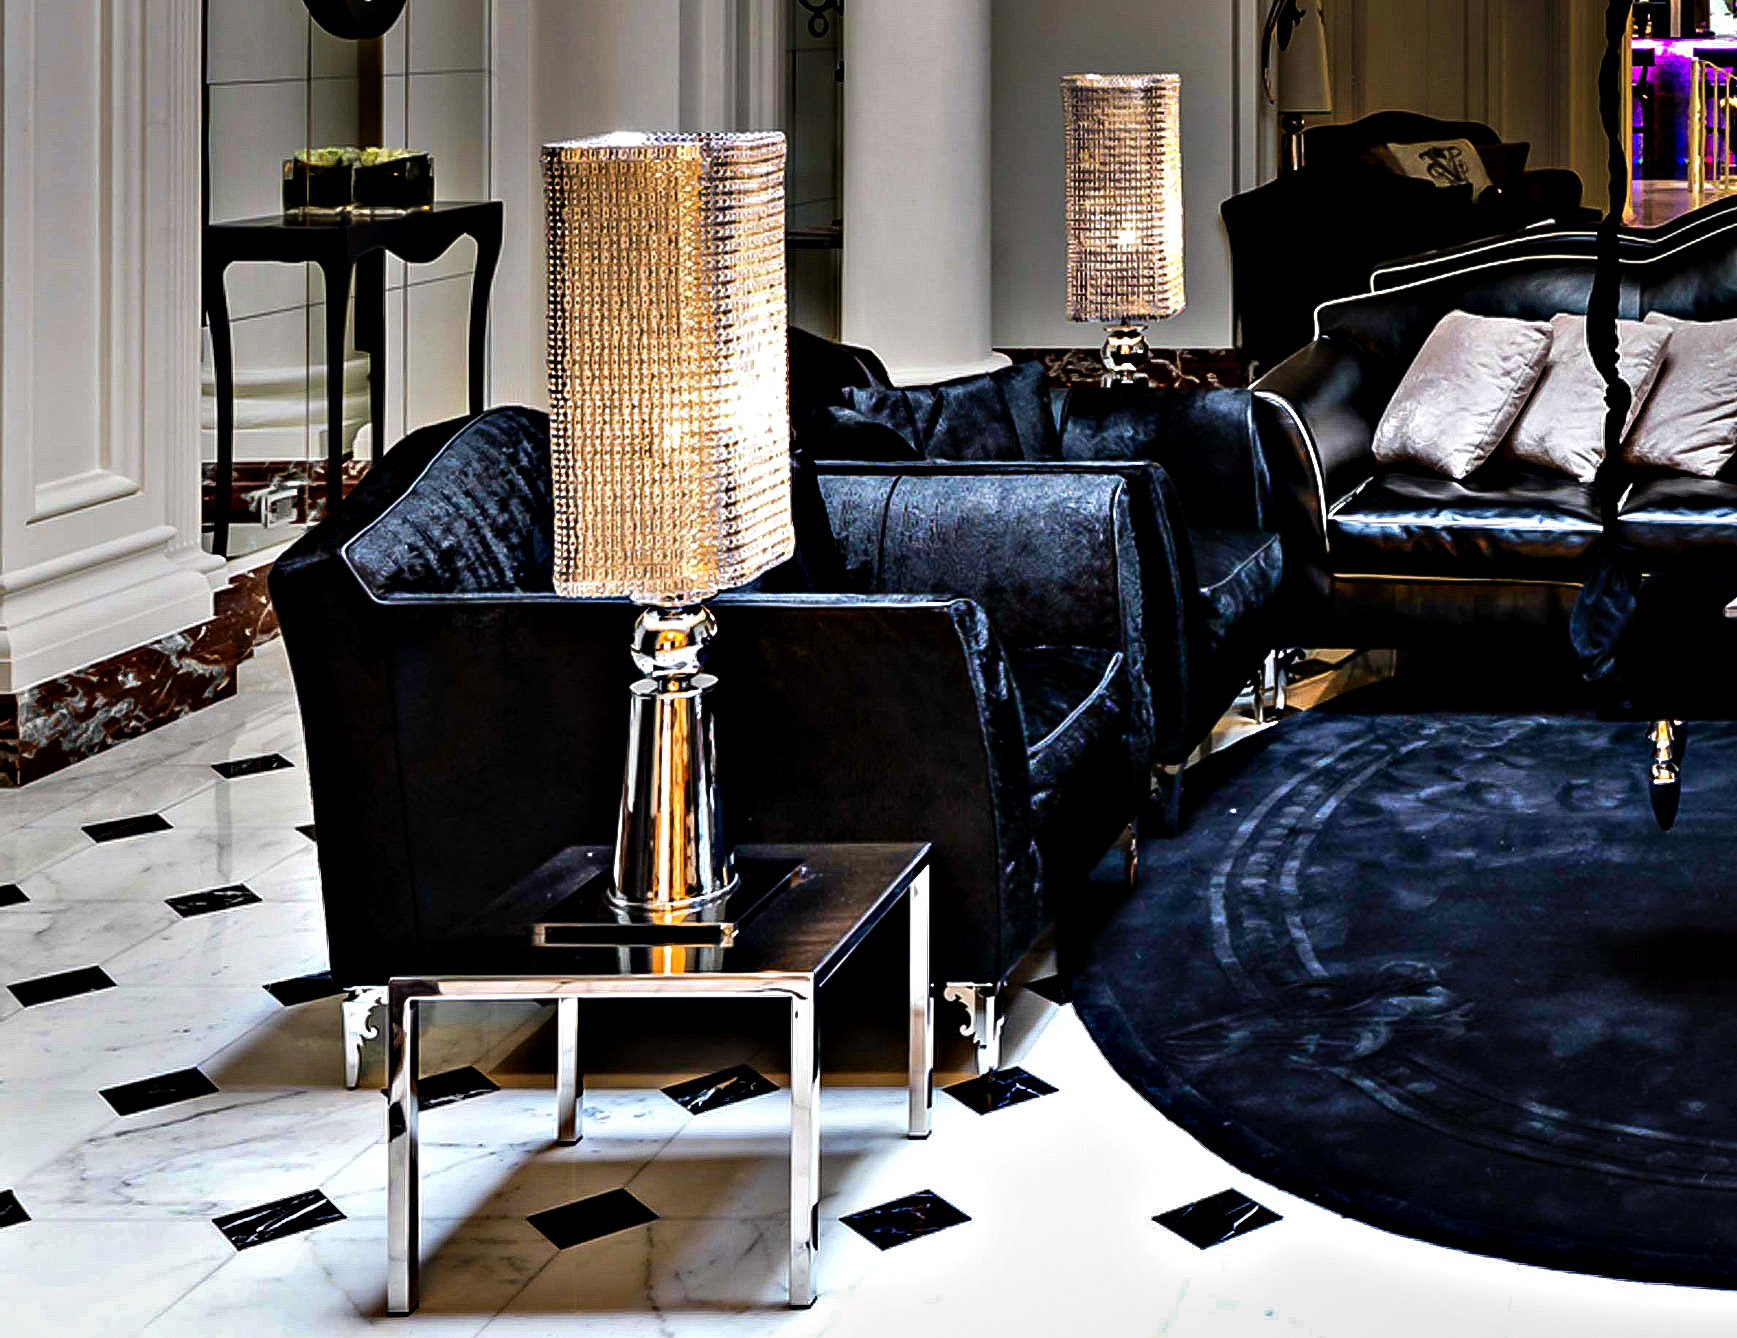 Shimmering Brass Table Lamps Naturally Convey the Aura of Luxury